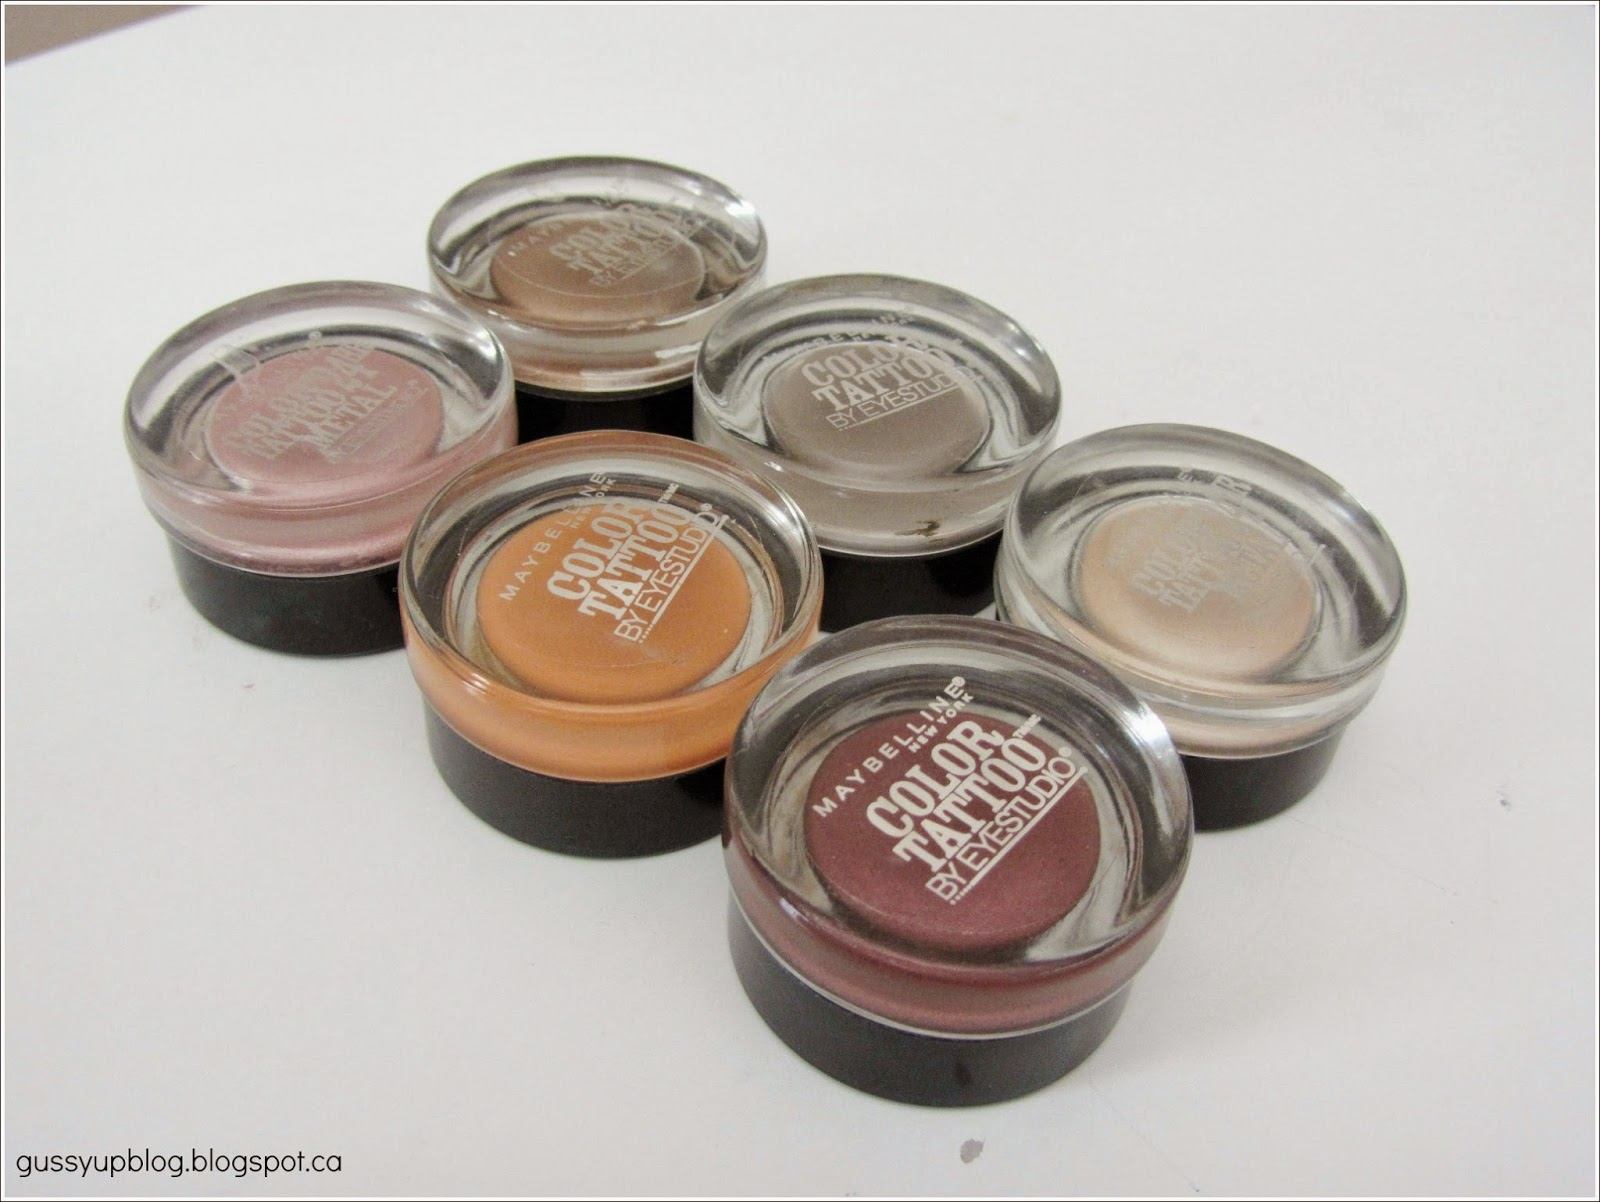 Maybelline Color Tattoo 24 Hour Eyeshadow, Review and Swatches